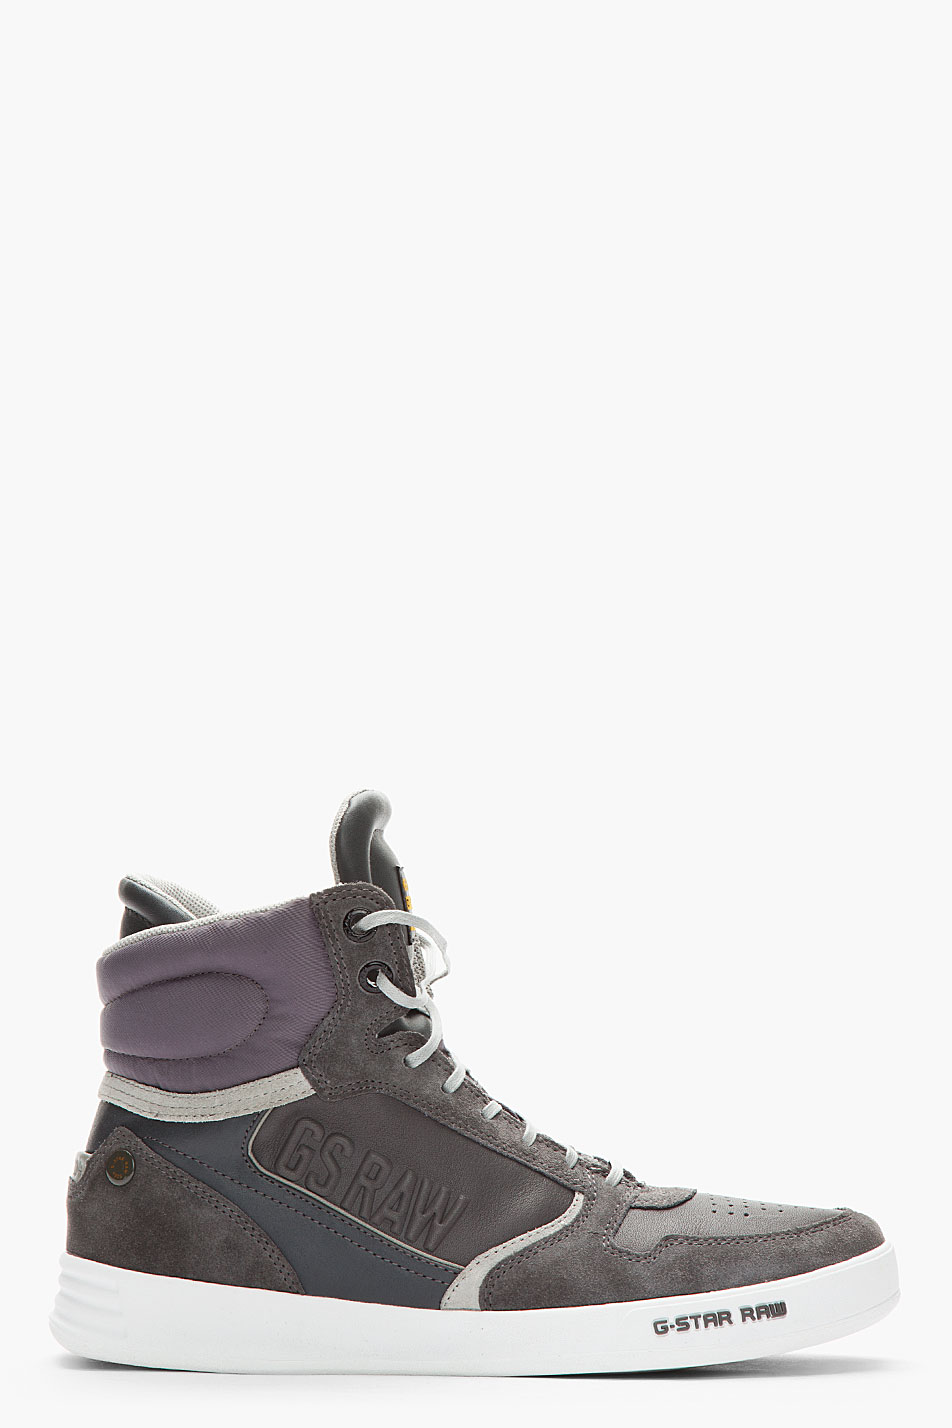 g star raw l leather suede yard pyro sneakers in gray for men charcoal lyst. Black Bedroom Furniture Sets. Home Design Ideas